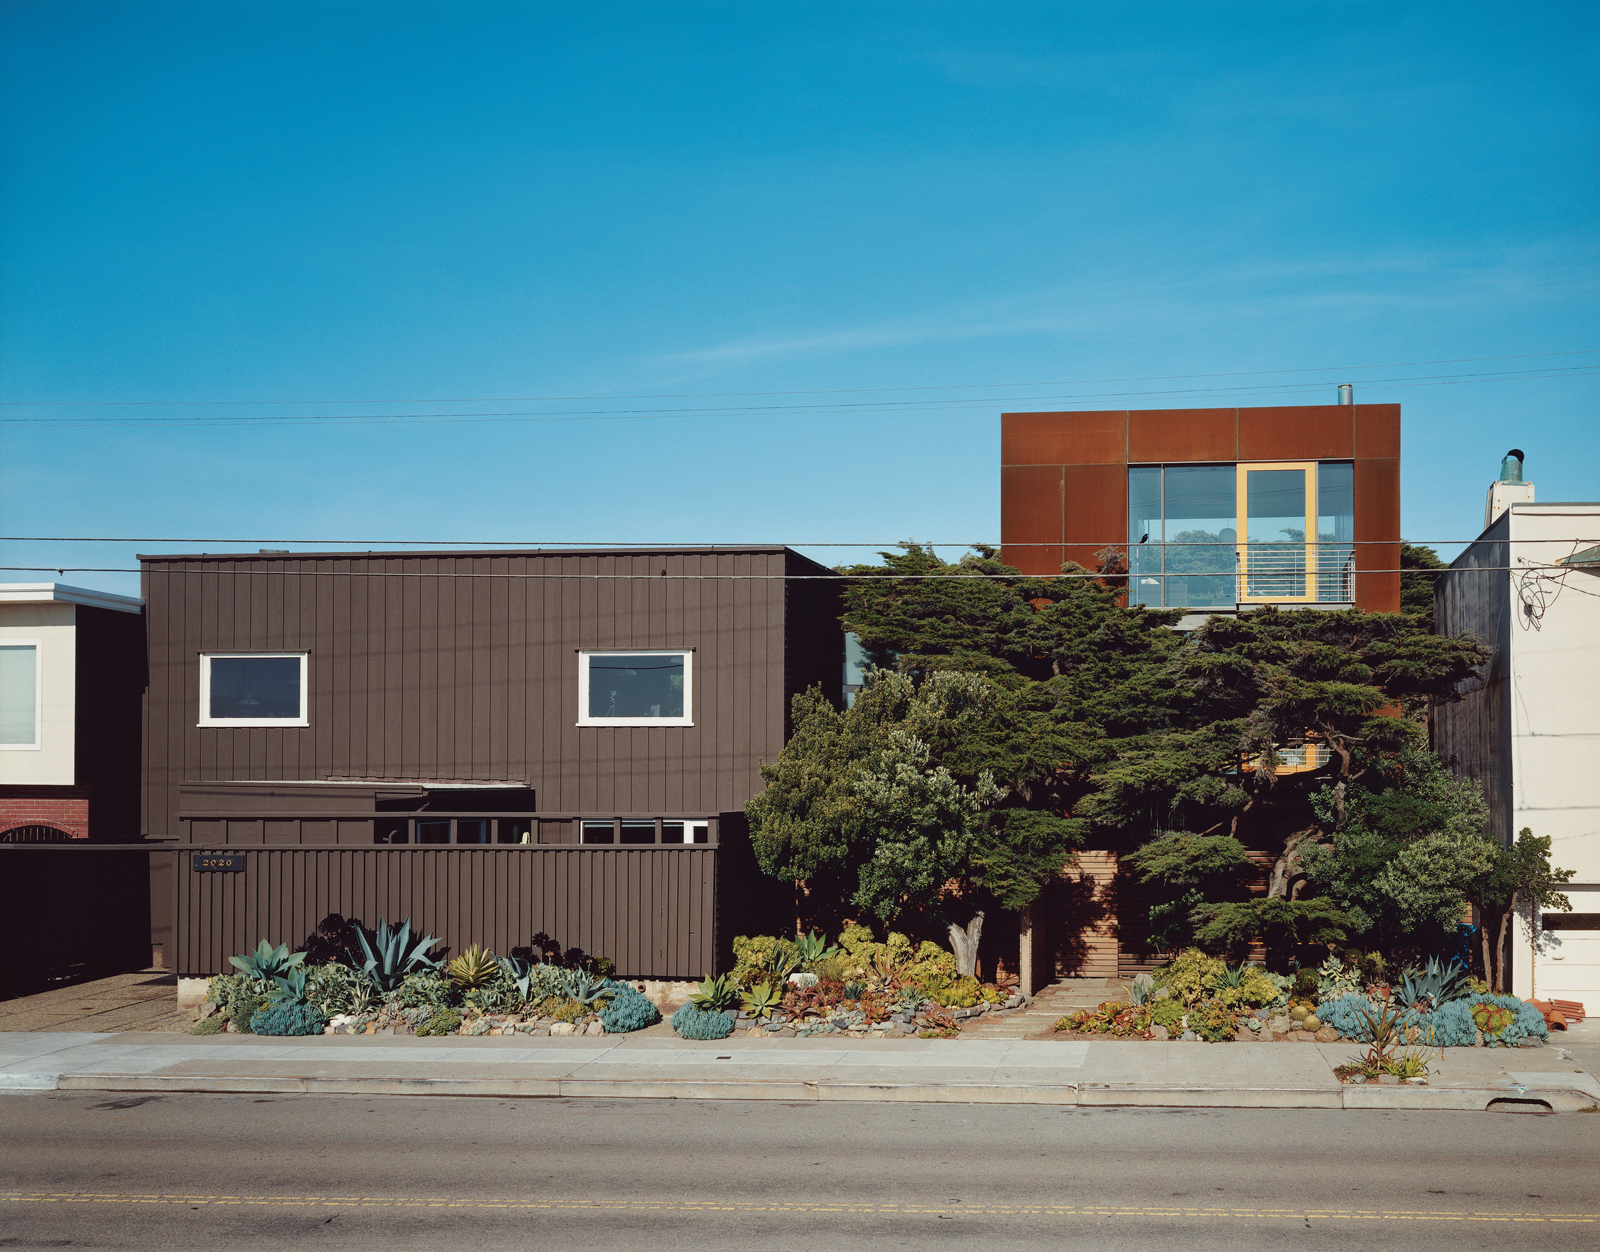 The original house (left) only gave two glimpses of the vast Pacific Ocean out of the west-facing windows—an unusual choice given the epic sweep and clear cachet of an uninterrupted ocean view. Aidlin Darling Design took a different tack with the new addi